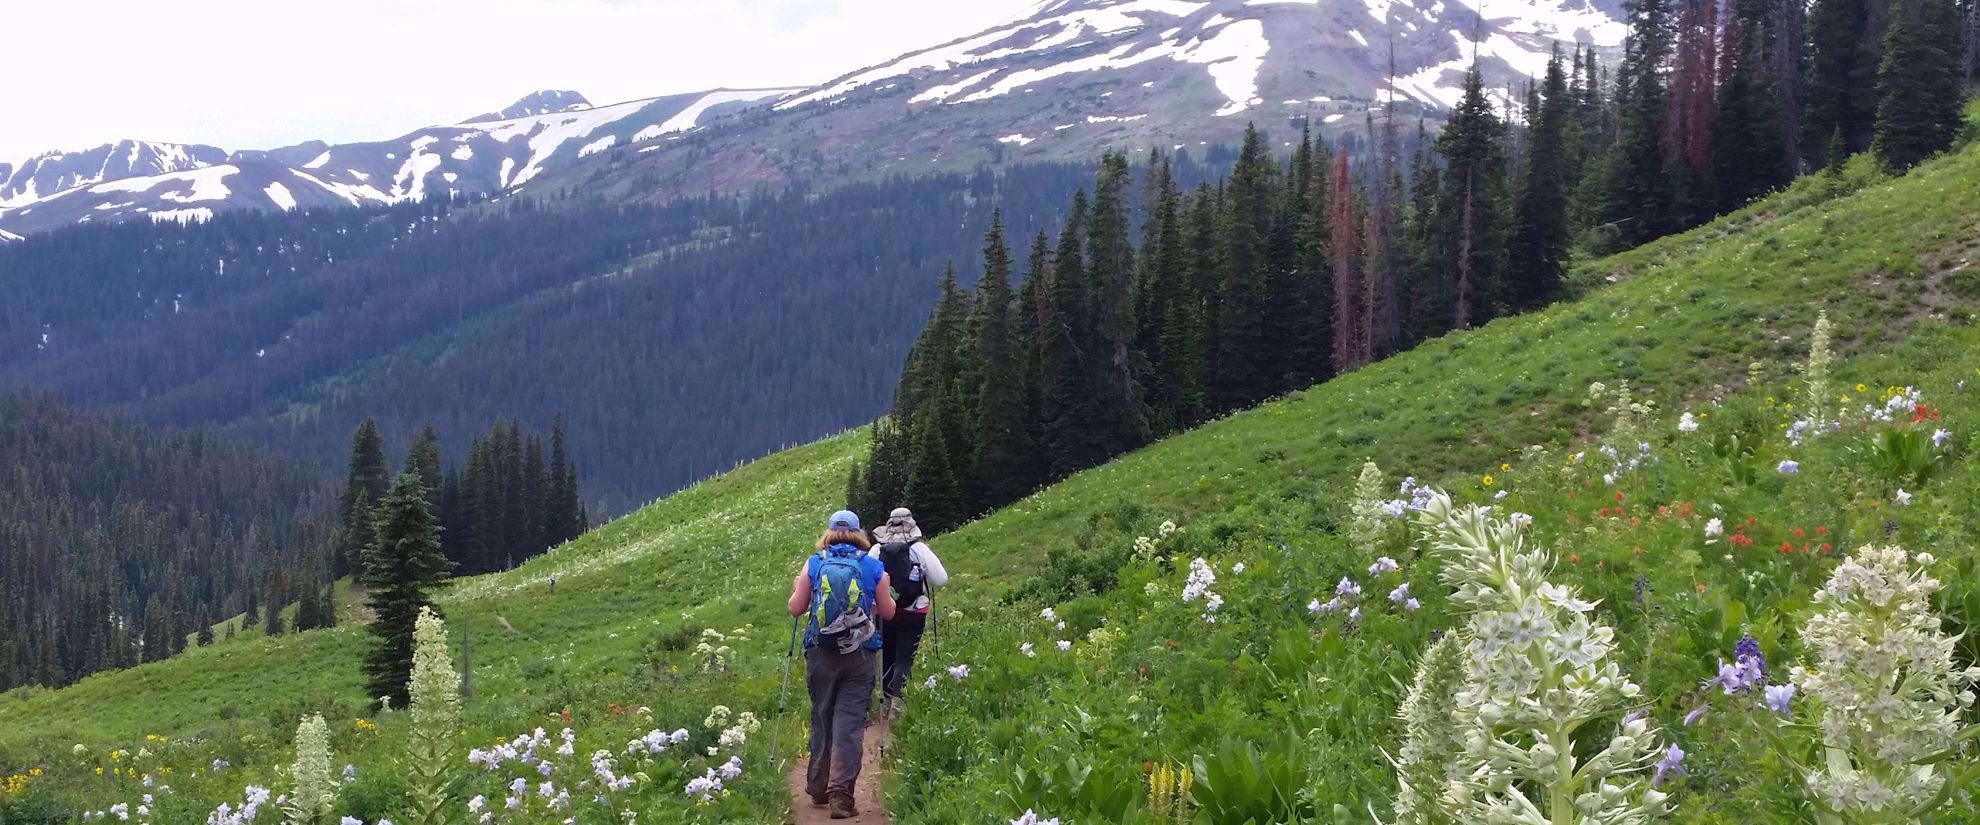 Picture of Hiking and Sketching in the Colorado Rockies